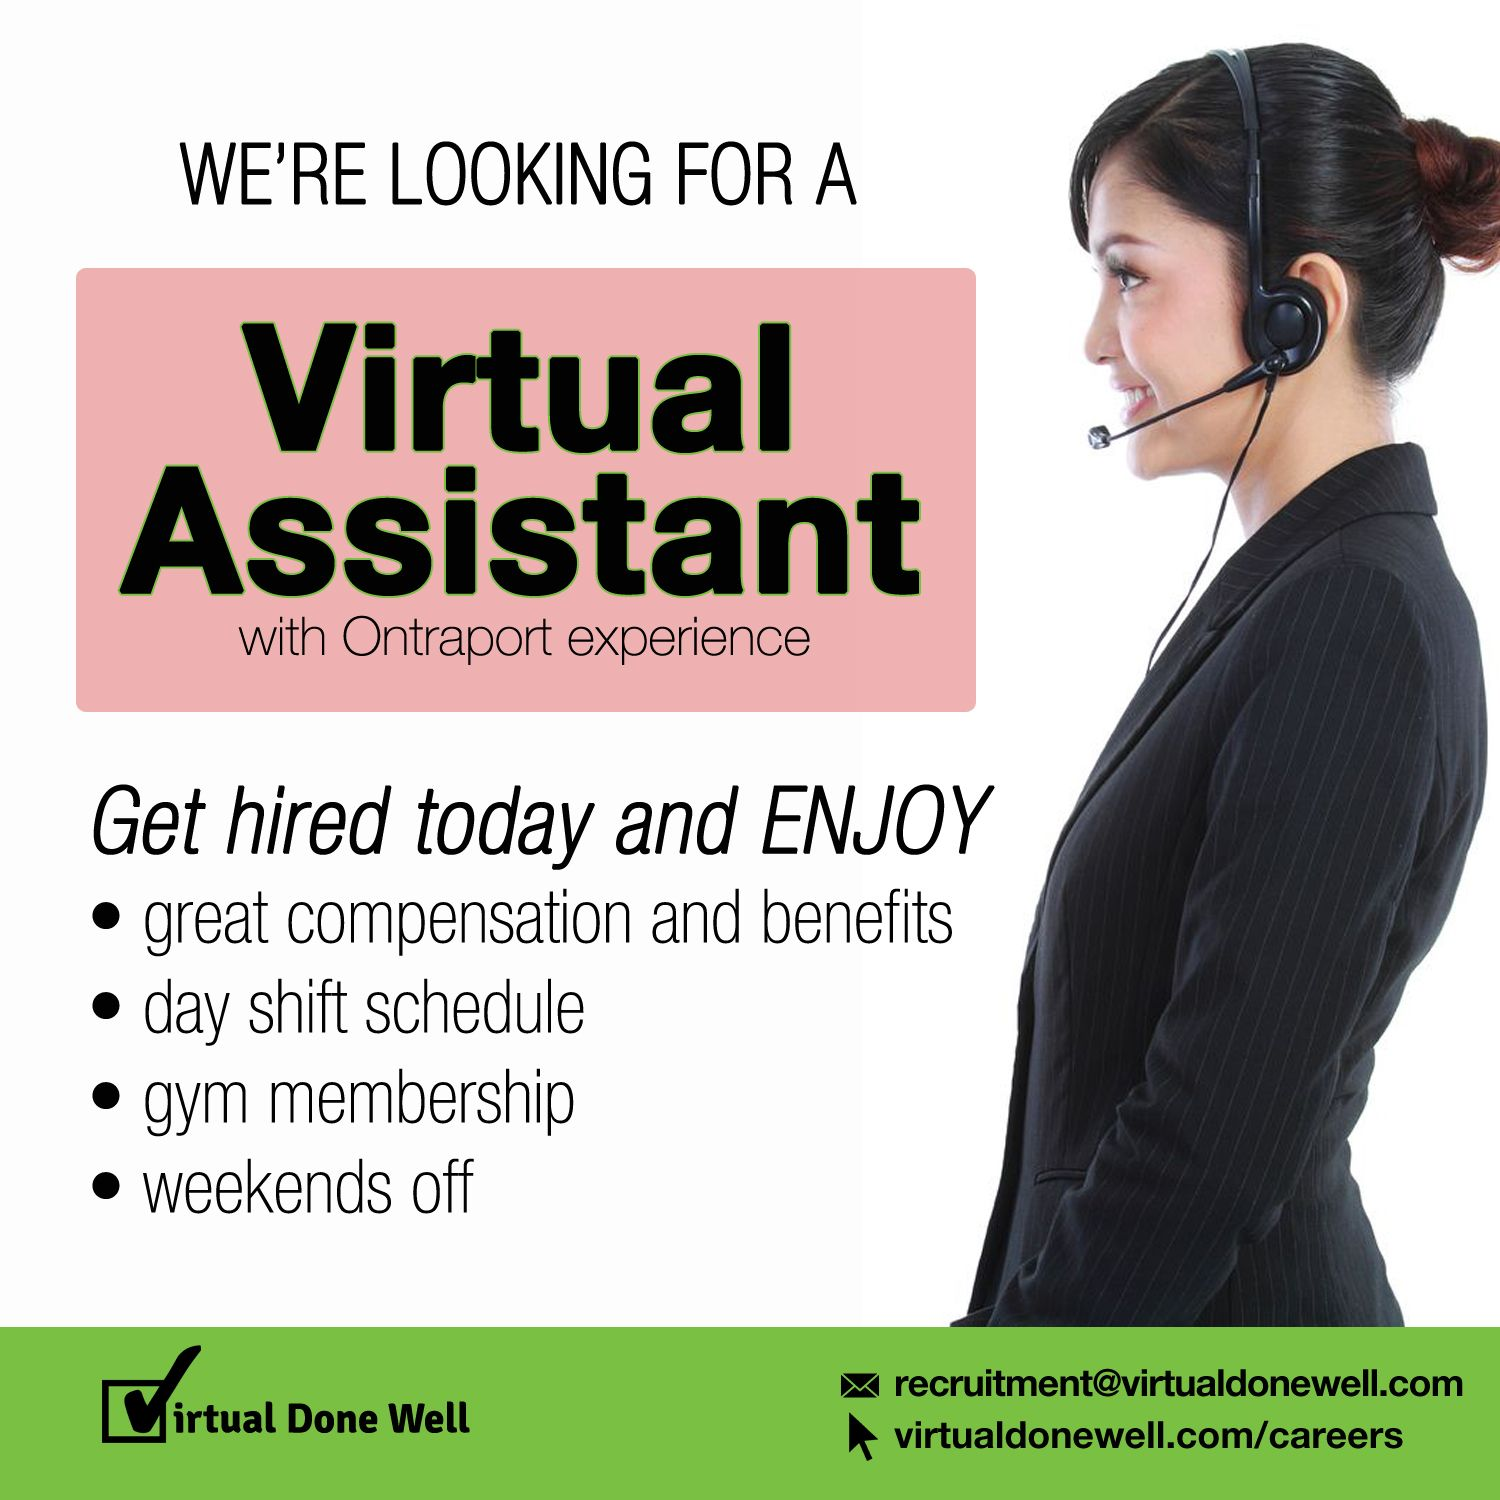 Apply Today And Enjoy Great Benefits Send Your Resume To Recruitment Virtualdonewell Com Or Request Your Interview How To Apply Virtual Assistant Working Life